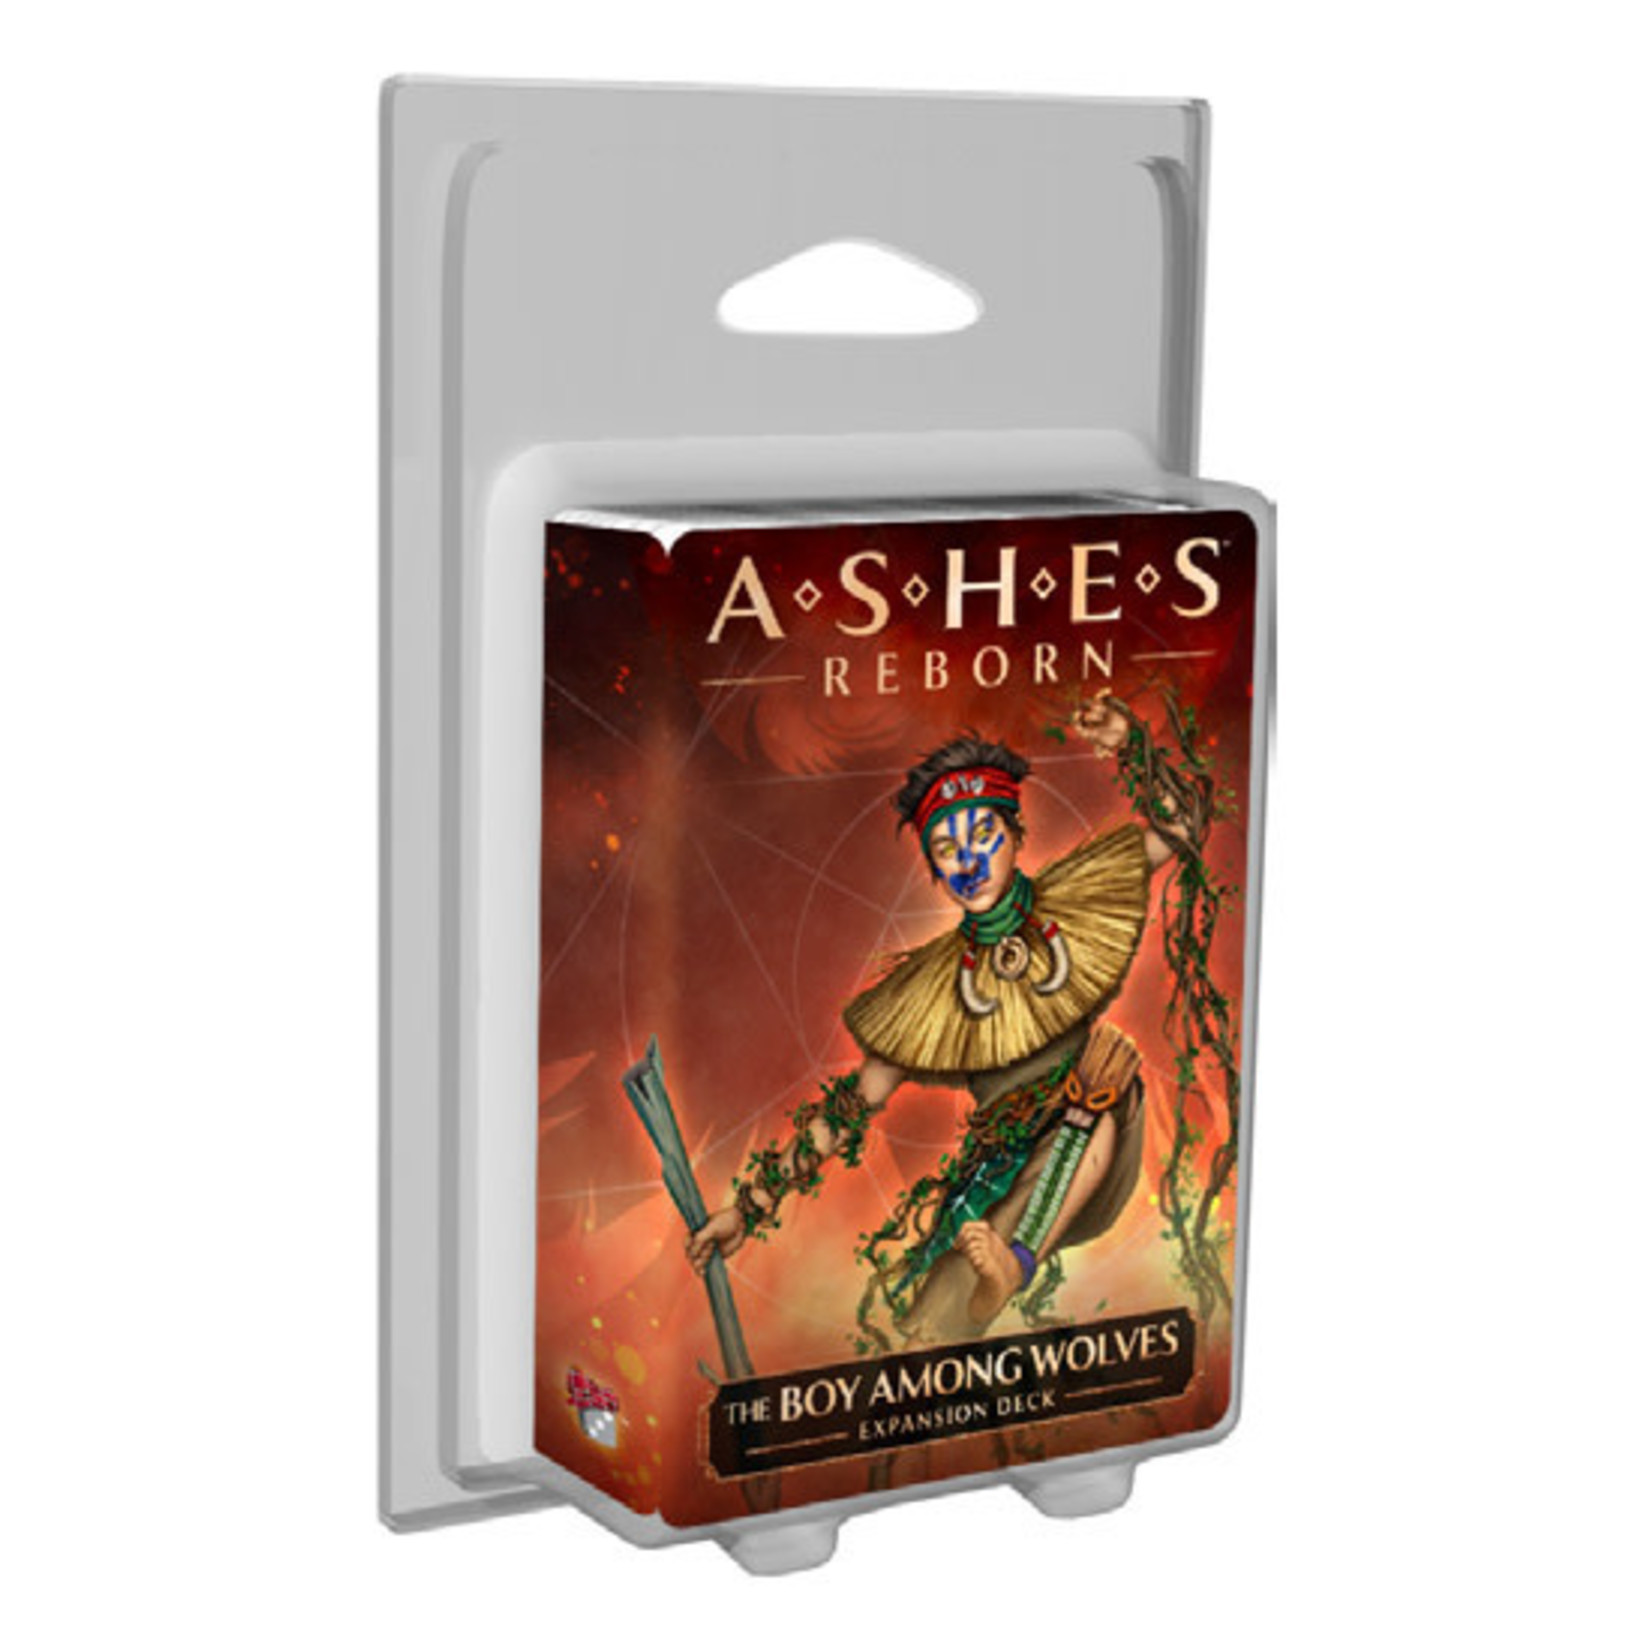 Plaid Hat Games Ashes Reborn The Boy Among Wolves